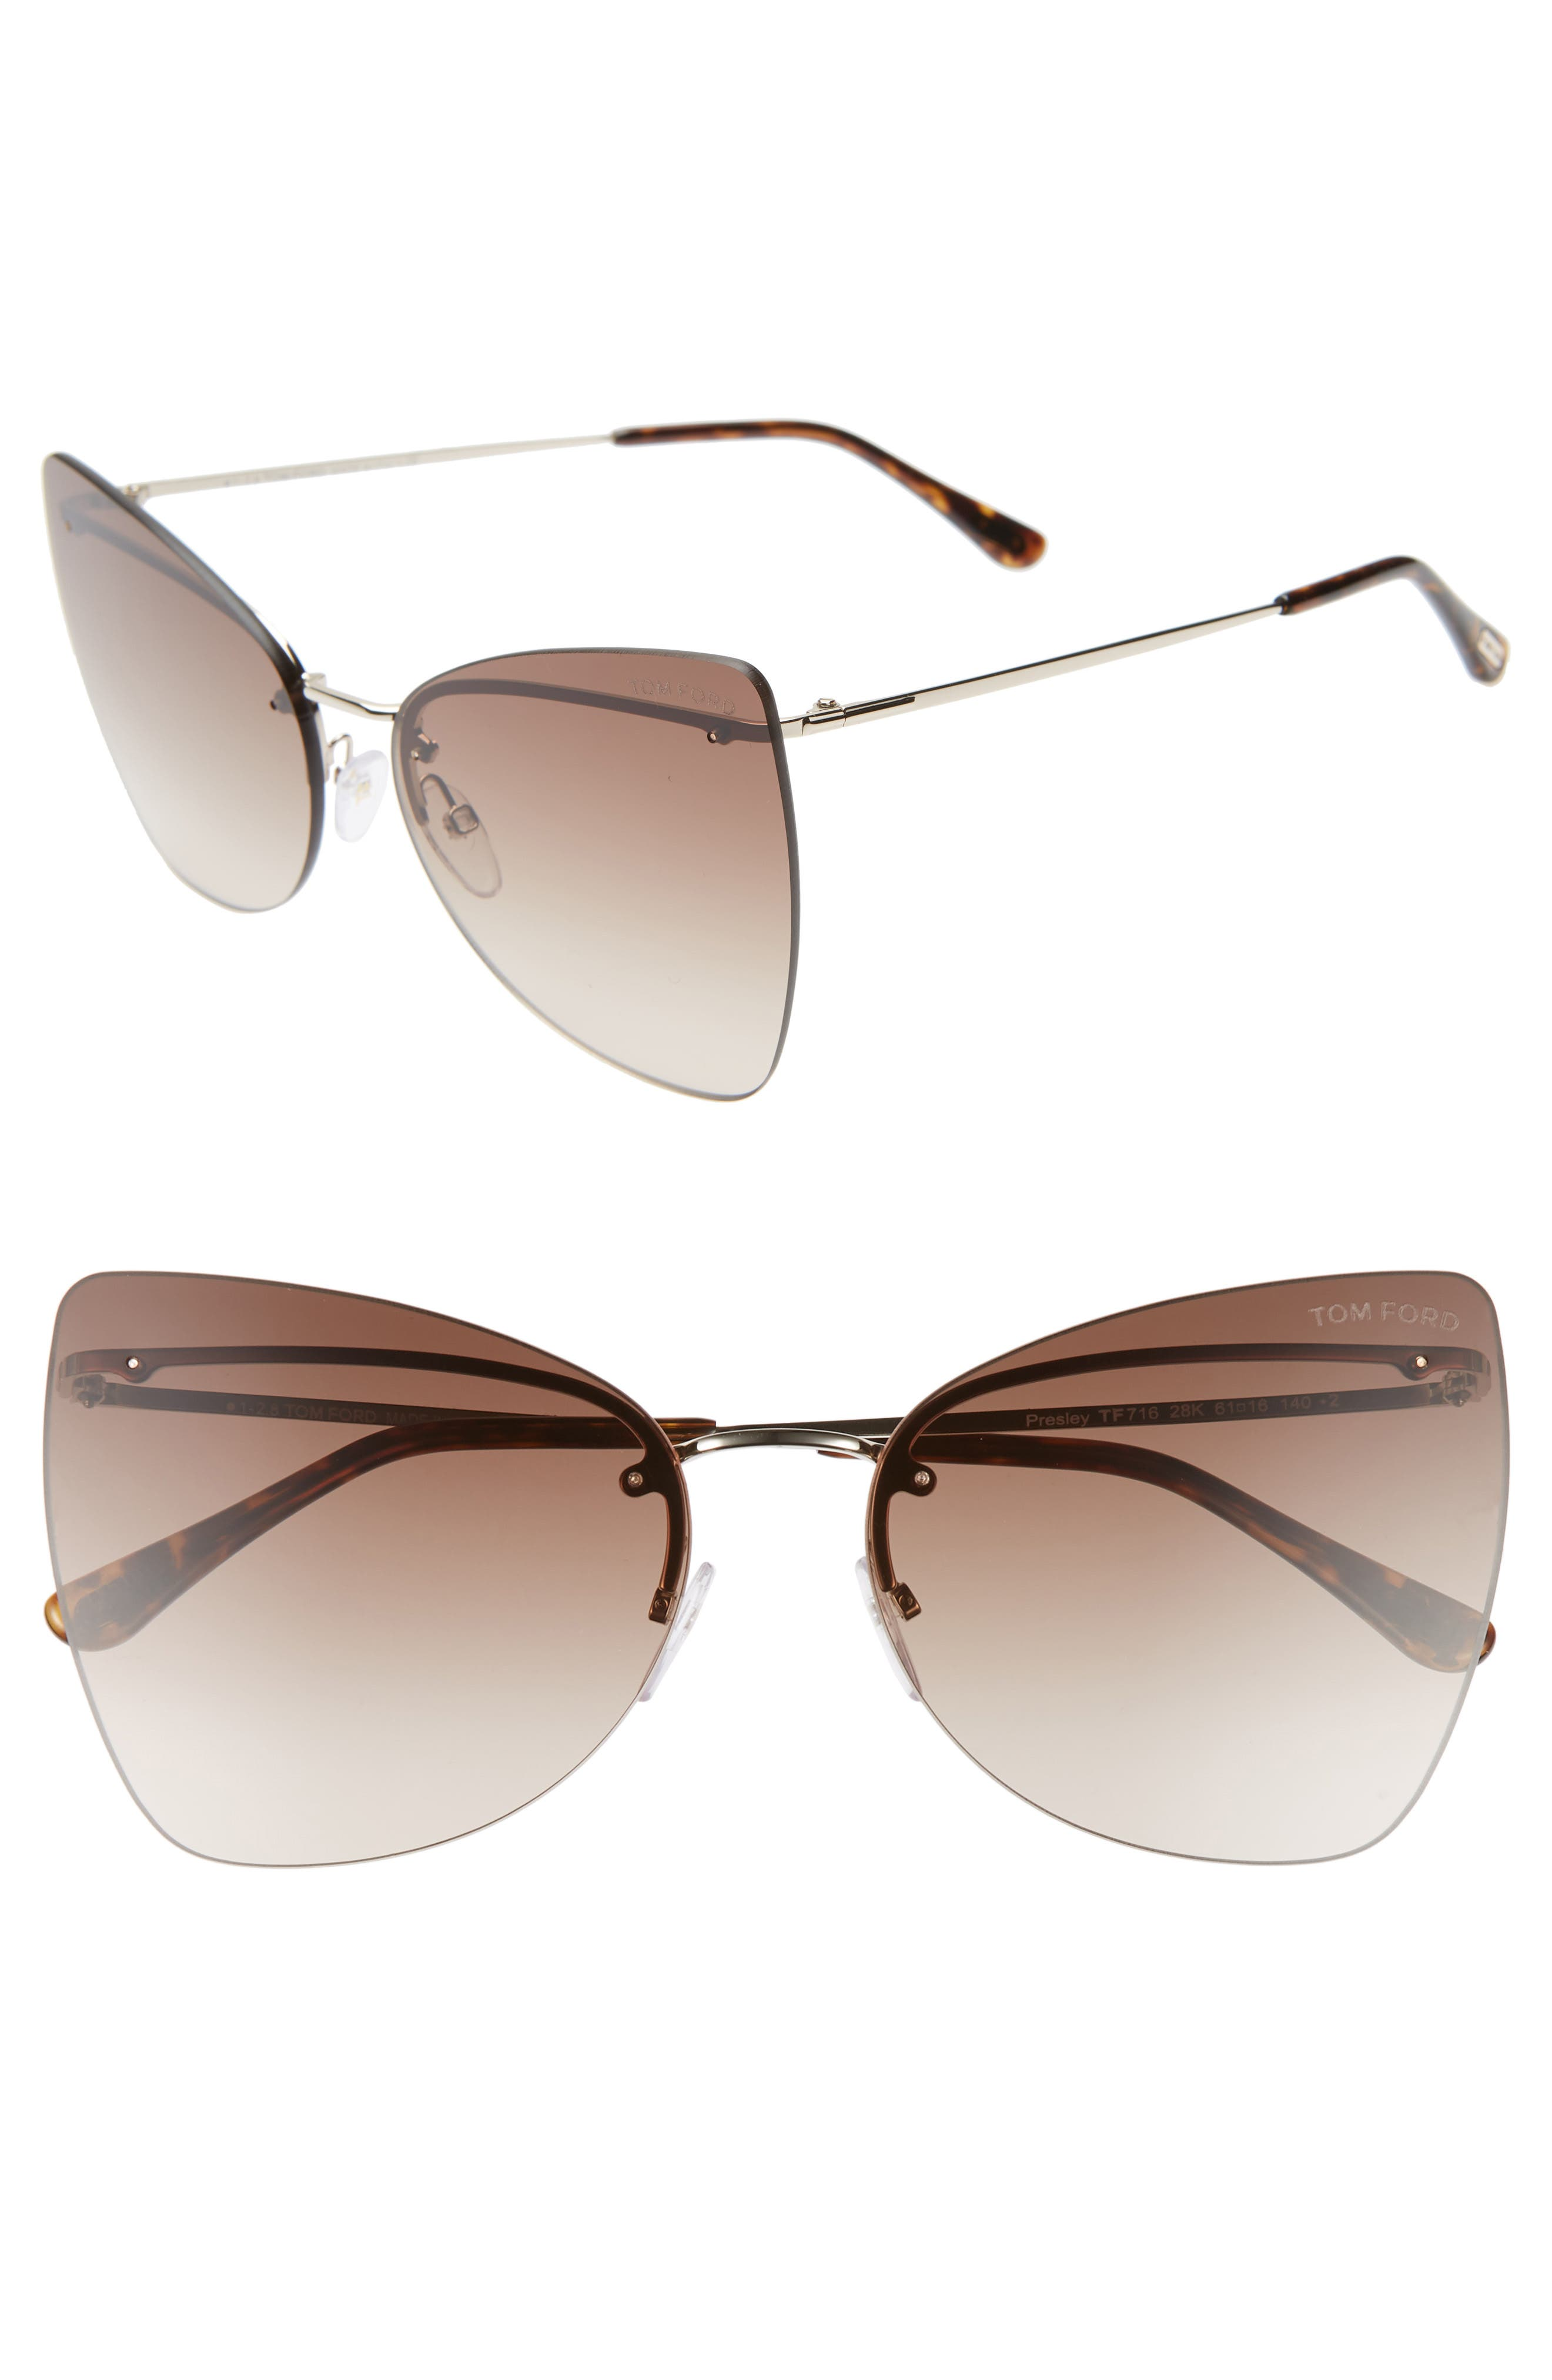 Tom Ford Presley 61Mm Butterfly Sunglasses - Rose Gold/ Havana/ Brown